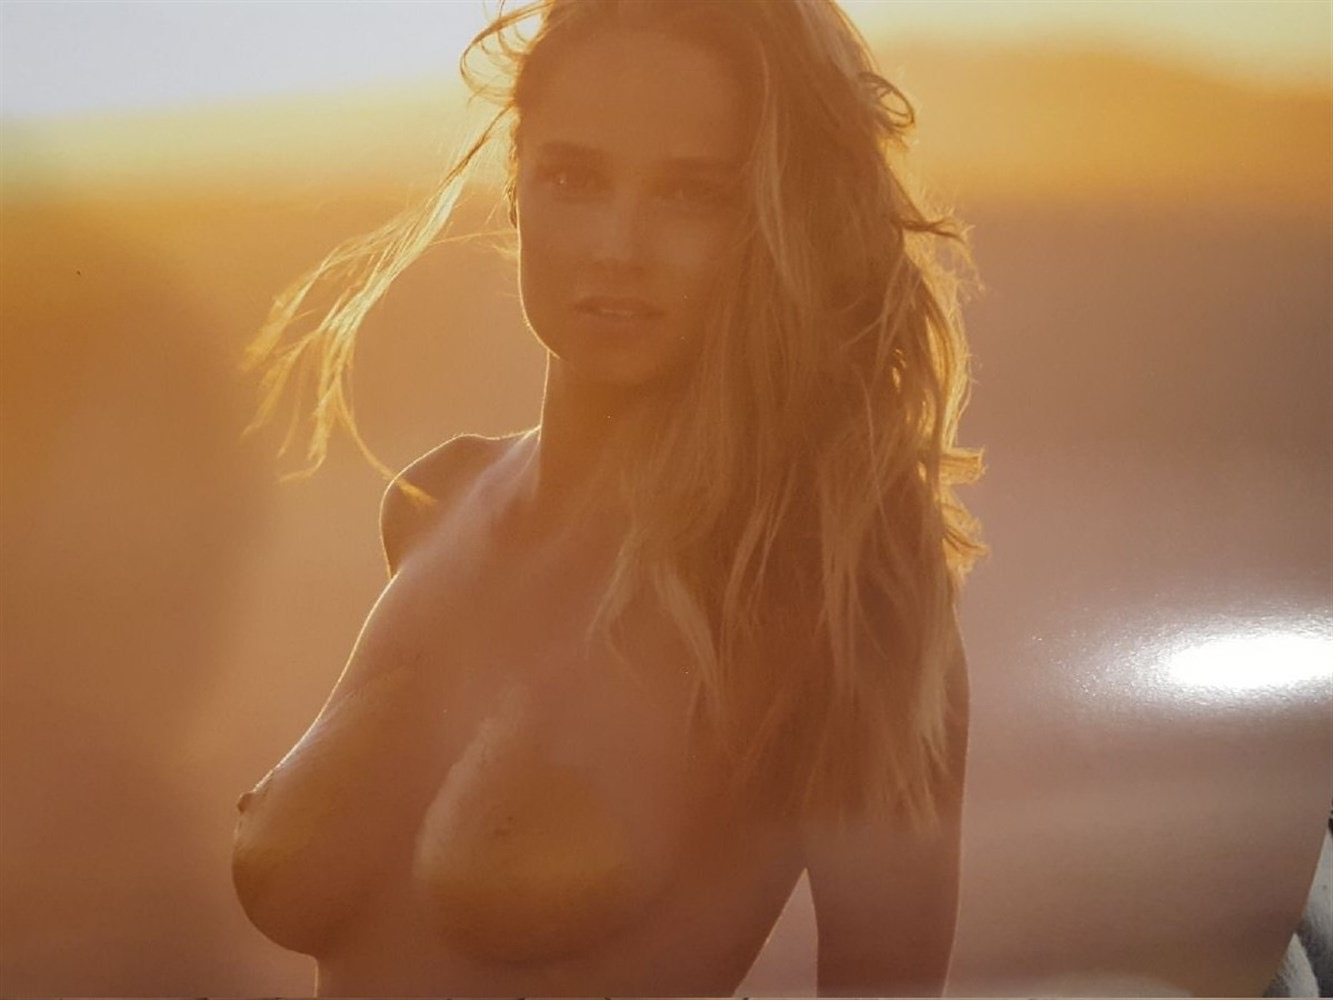 Genevieve Morton Nude  Celebrity Leaks Scandals Leaked -2358